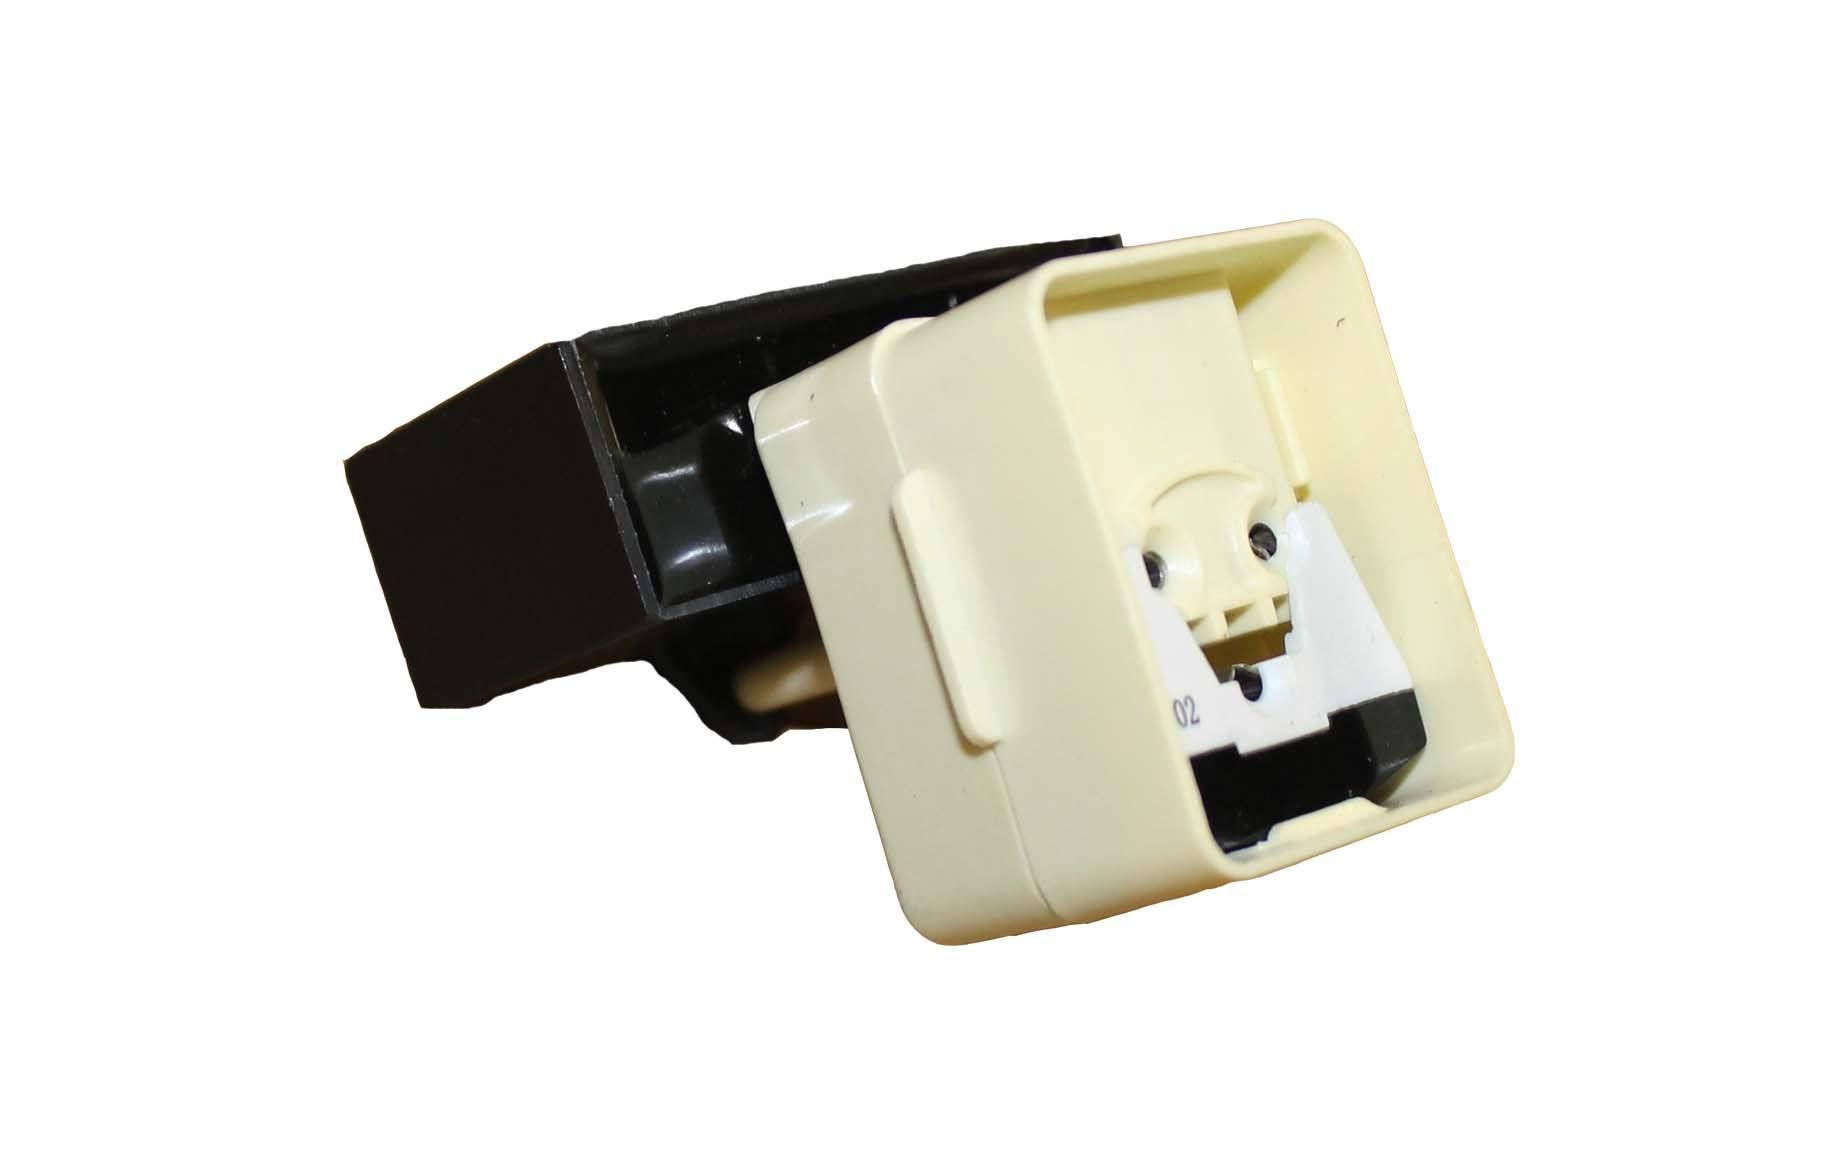 Replacement Refrigerators Compressor Start Device Fits Whirlpool Compatible With Part 8201786 Refrigerator Compressor Refrigerator Safety Precautions